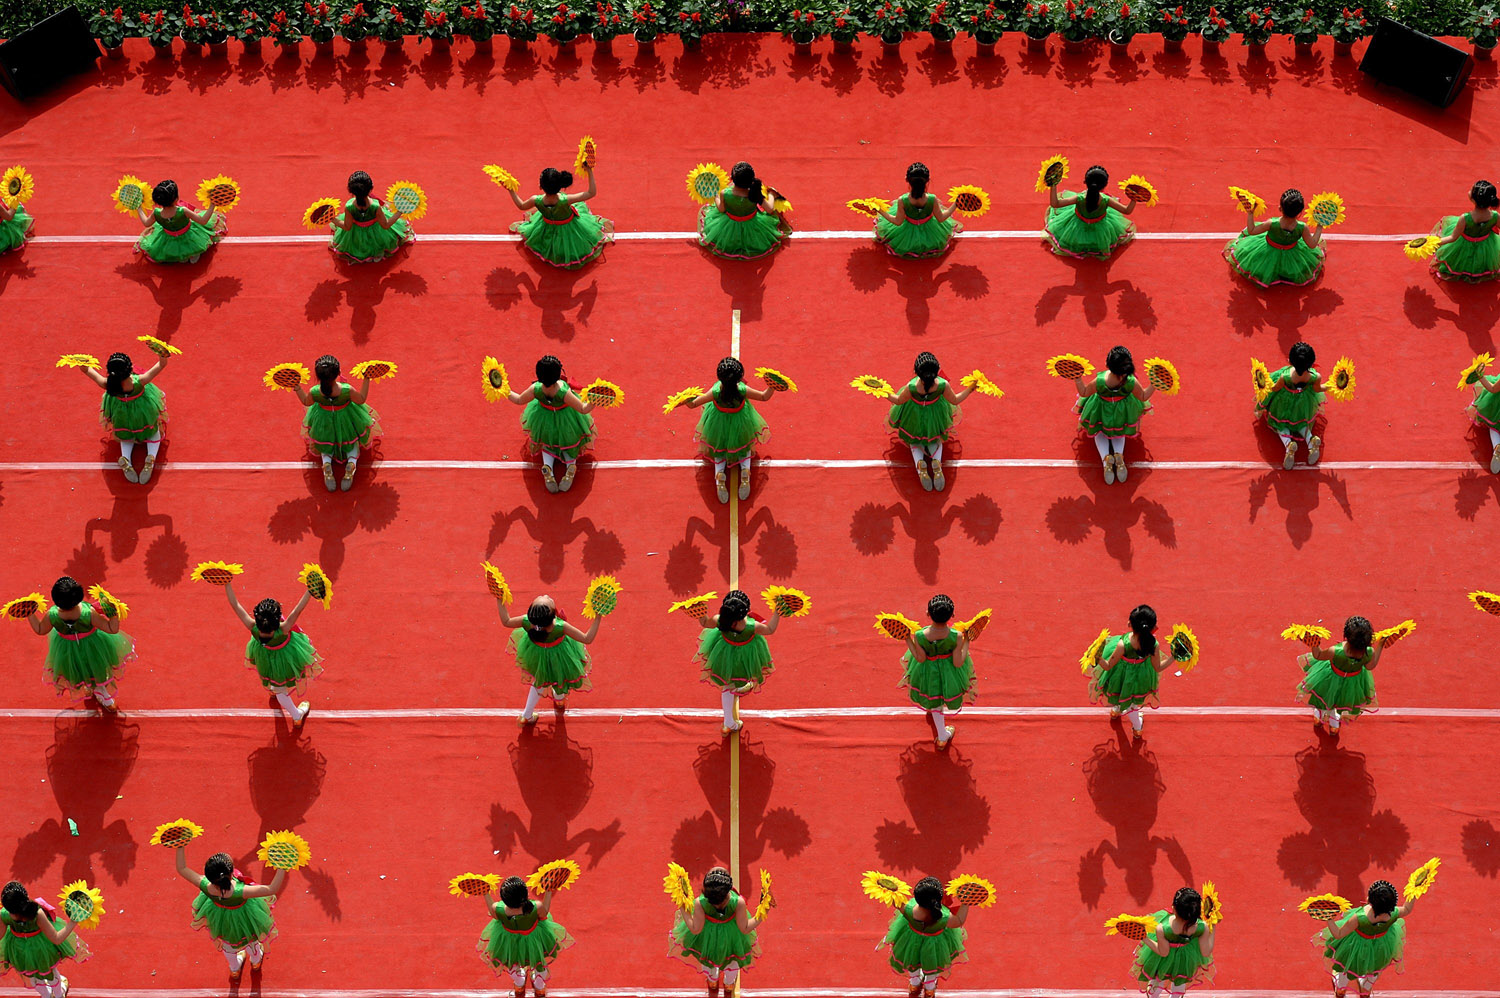 Pupils dance to celebrate the upcoming Children's Day in Xuan'en County, central China's Hubei Province, May 28, 2014.